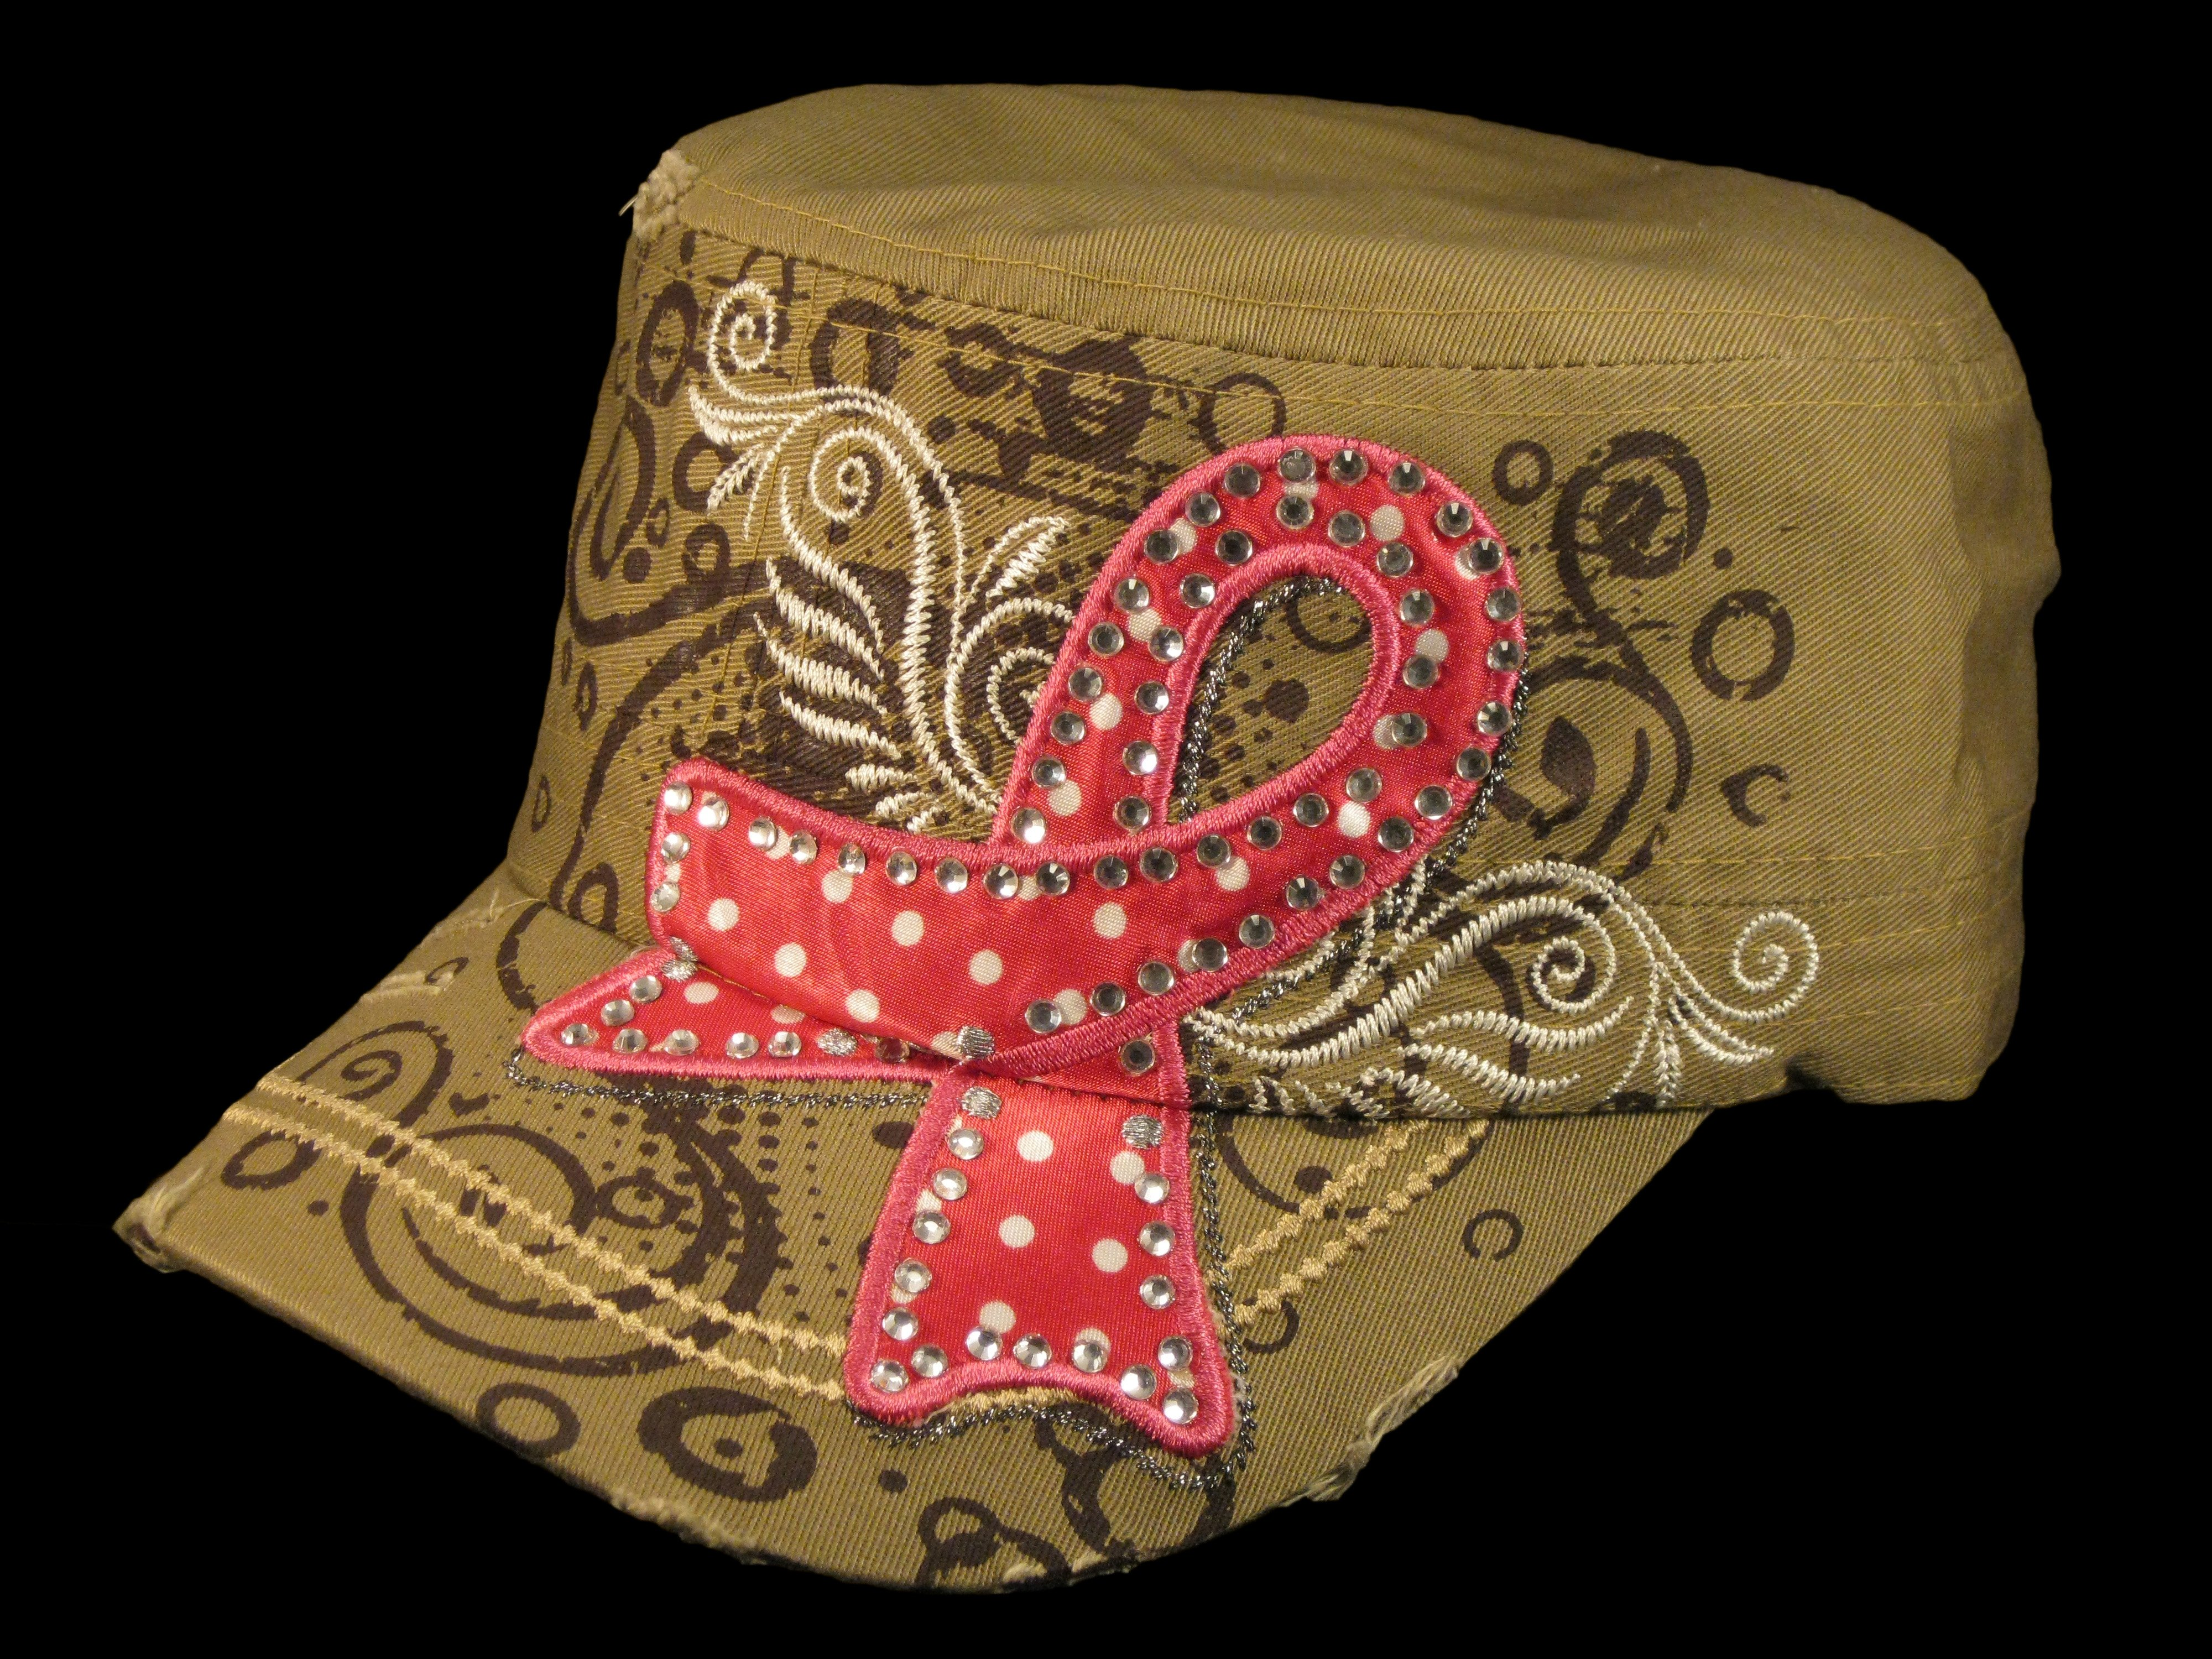 Khaki Breast Cancer Cadet Cap Distressed Military Army Vintage Hat ... 9bc0ae9a486